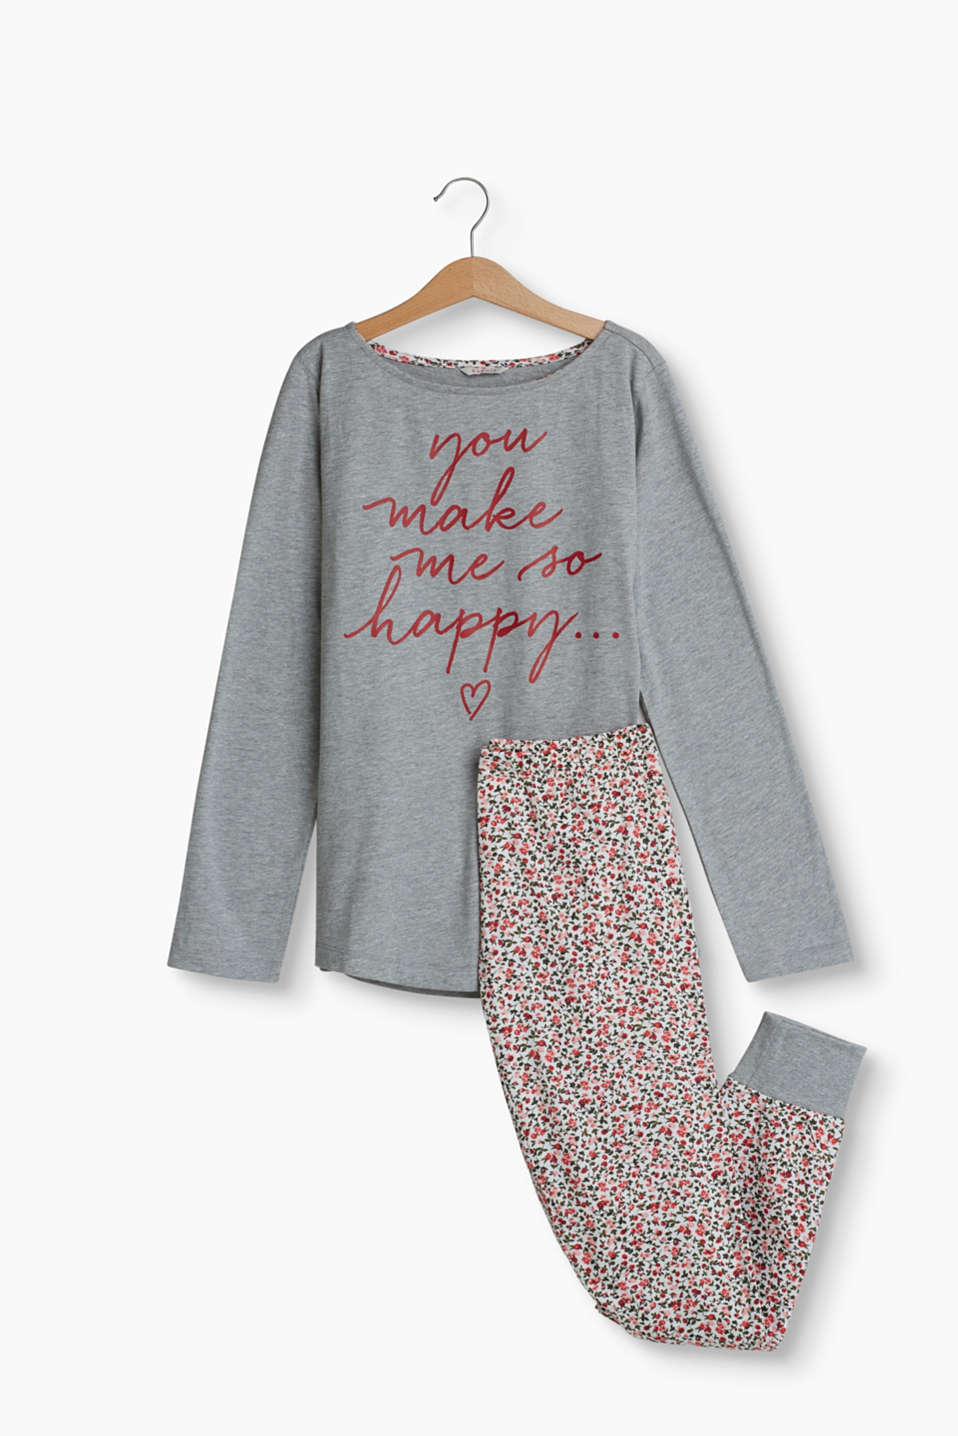 These pyjamas are wonderfully soft in a trendy design with a slogan print and floral pattern.